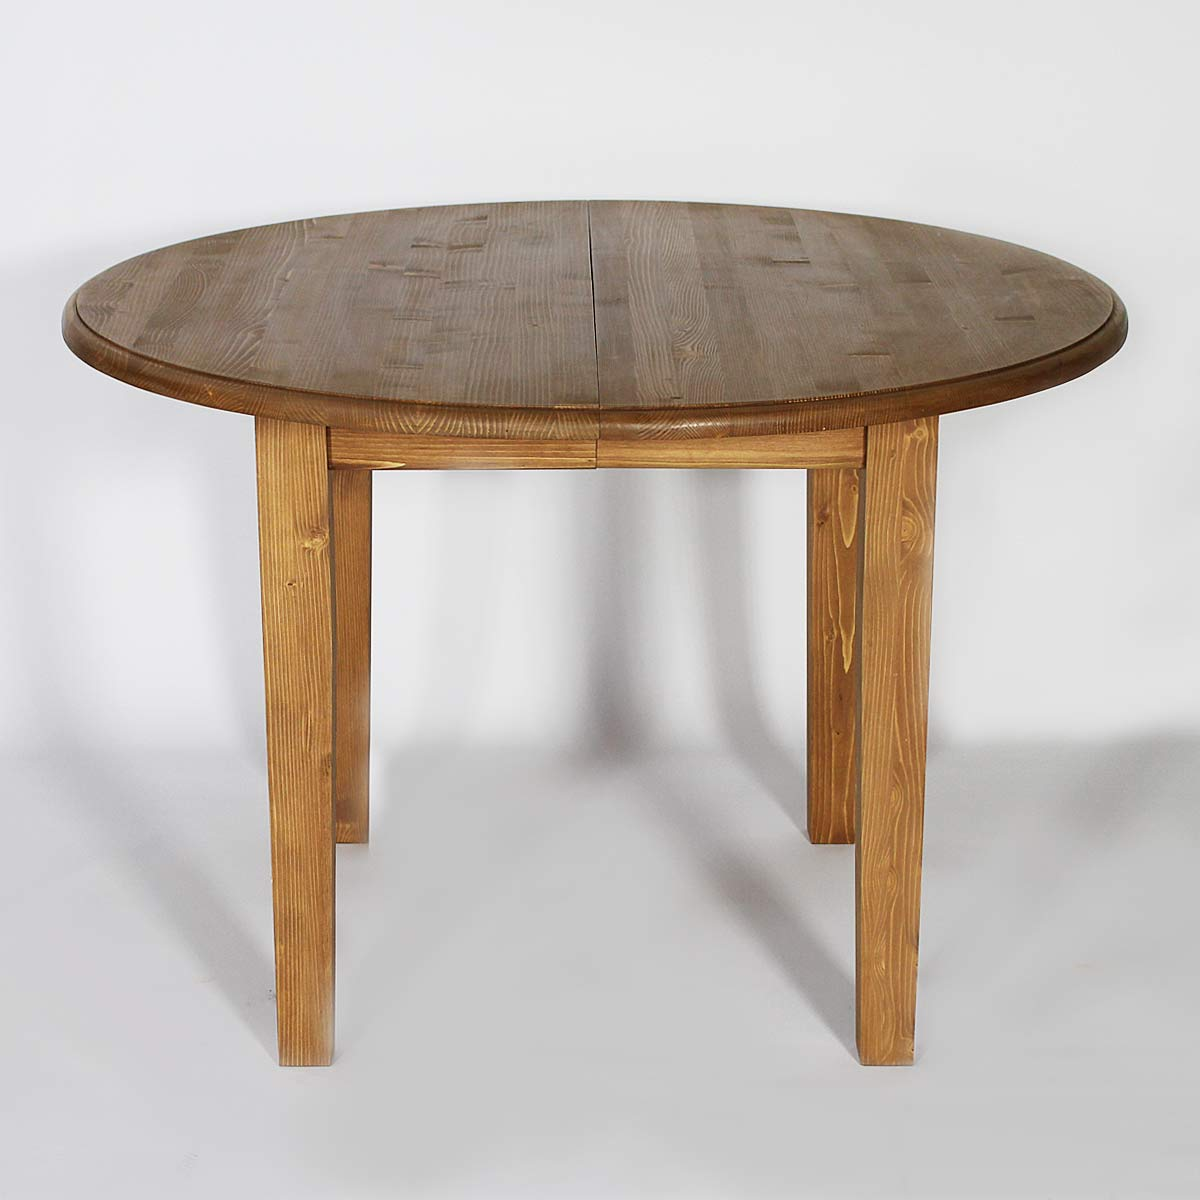 Table basse relevable pied central - Table ronde en verre pas cher ...